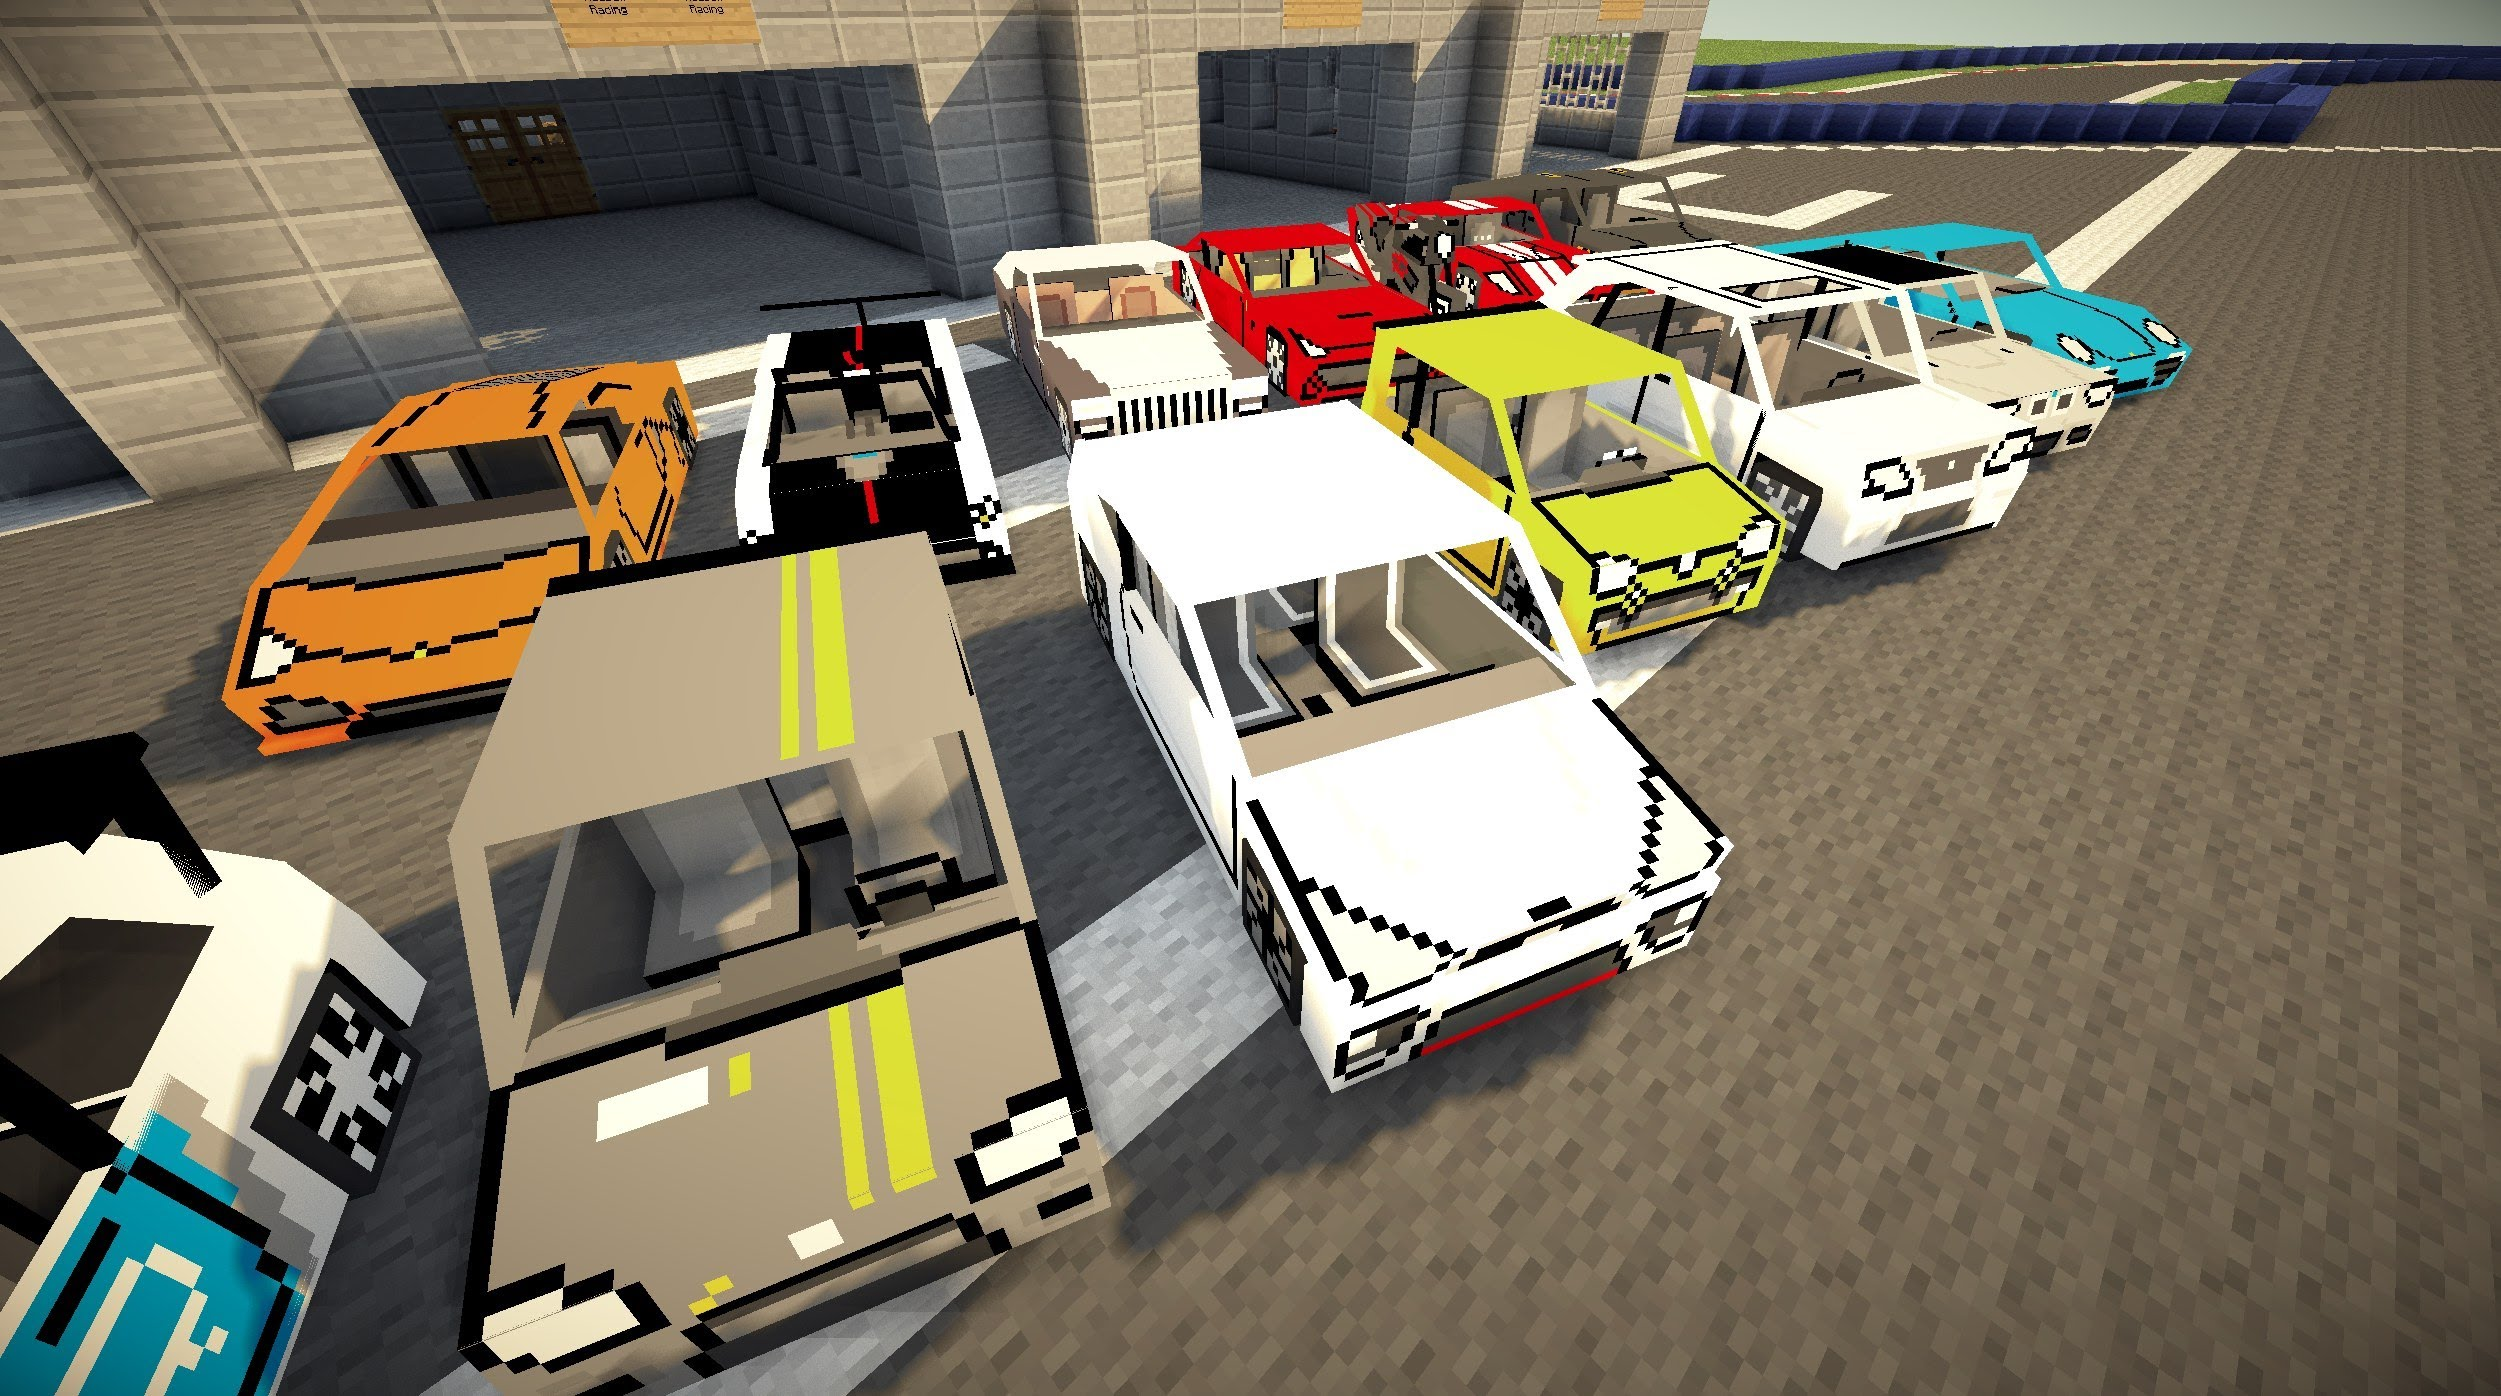 Fex\'s Vehicle Pack 1.12.2 (New Vehicles and Models) - 9Minecraft.Net